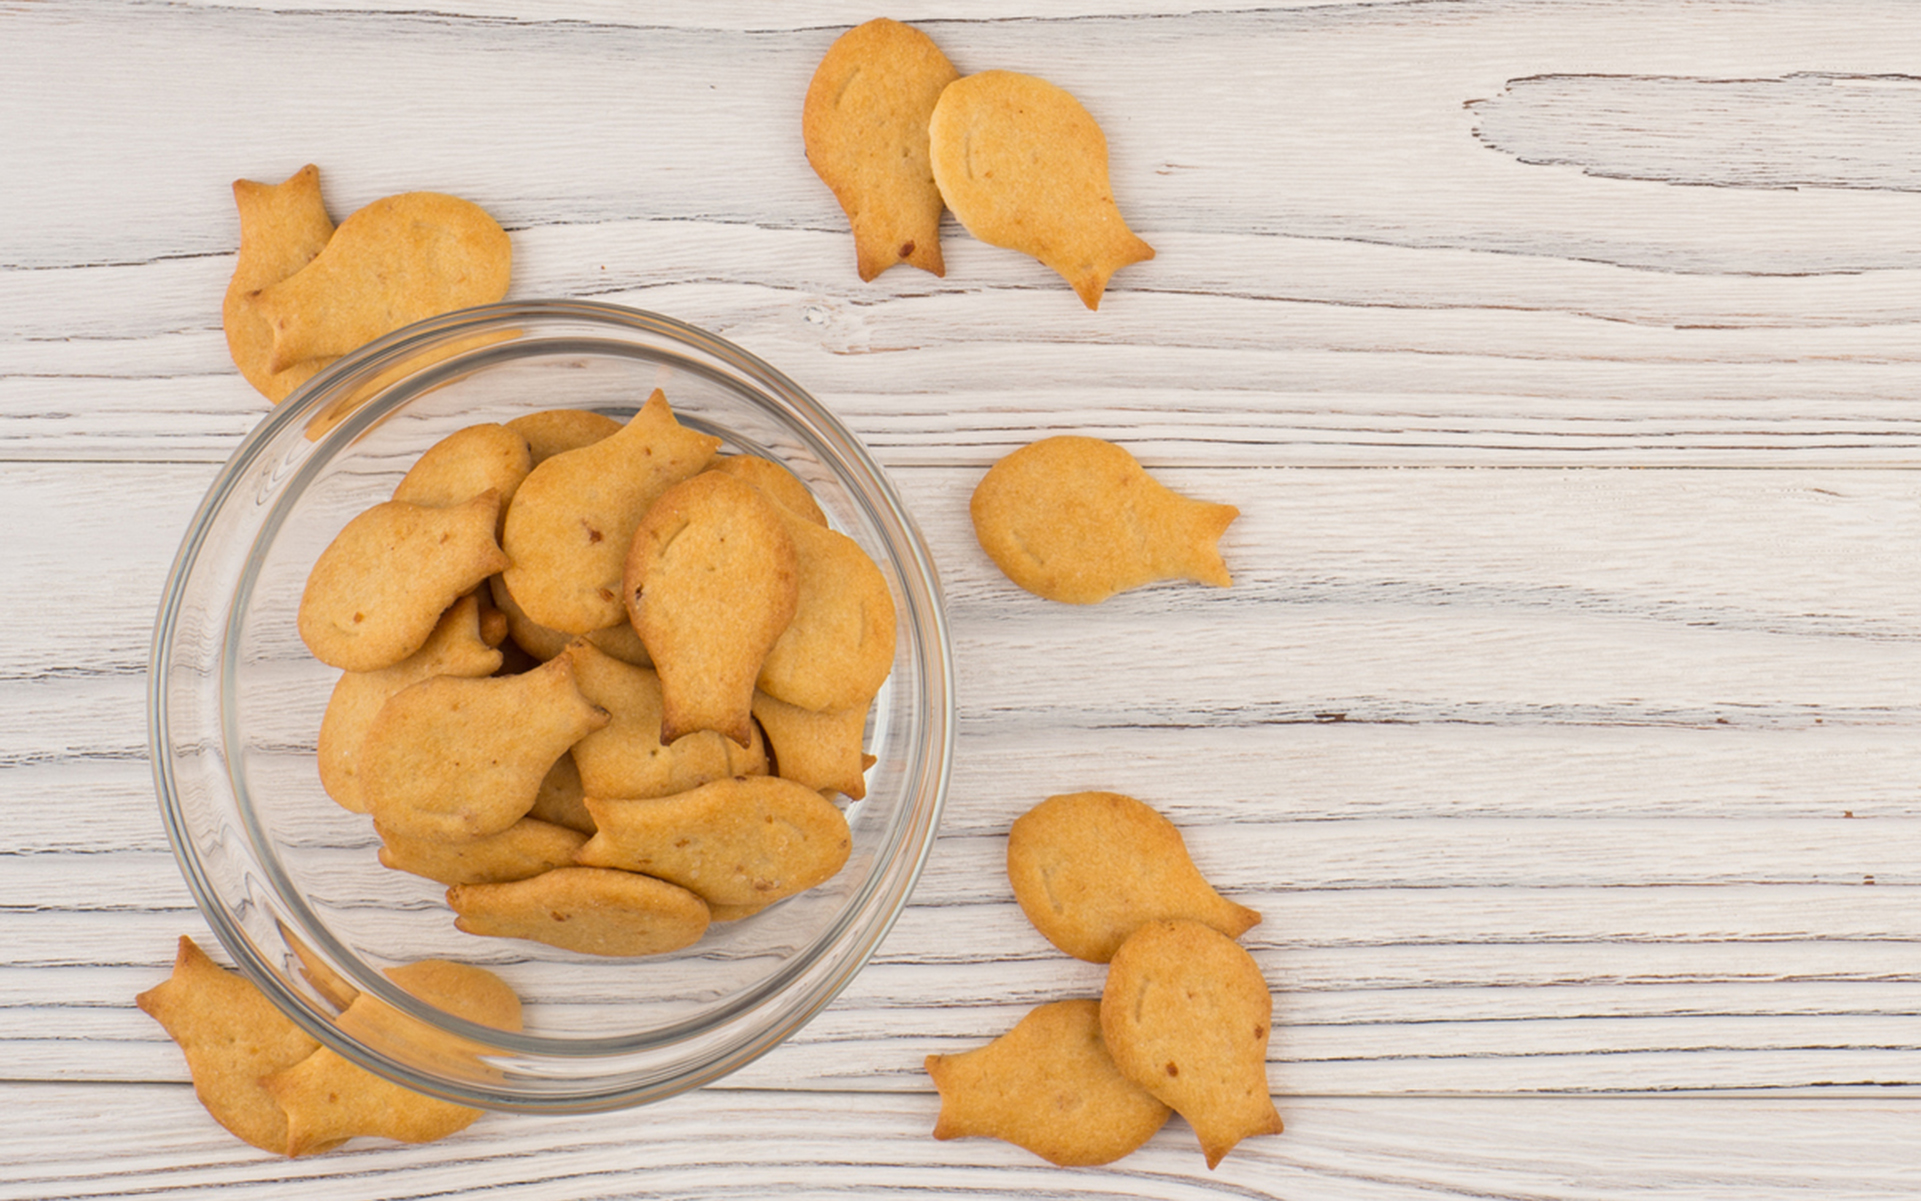 Respect the Goldfish Crackers: My Edibles Cautionary Tale